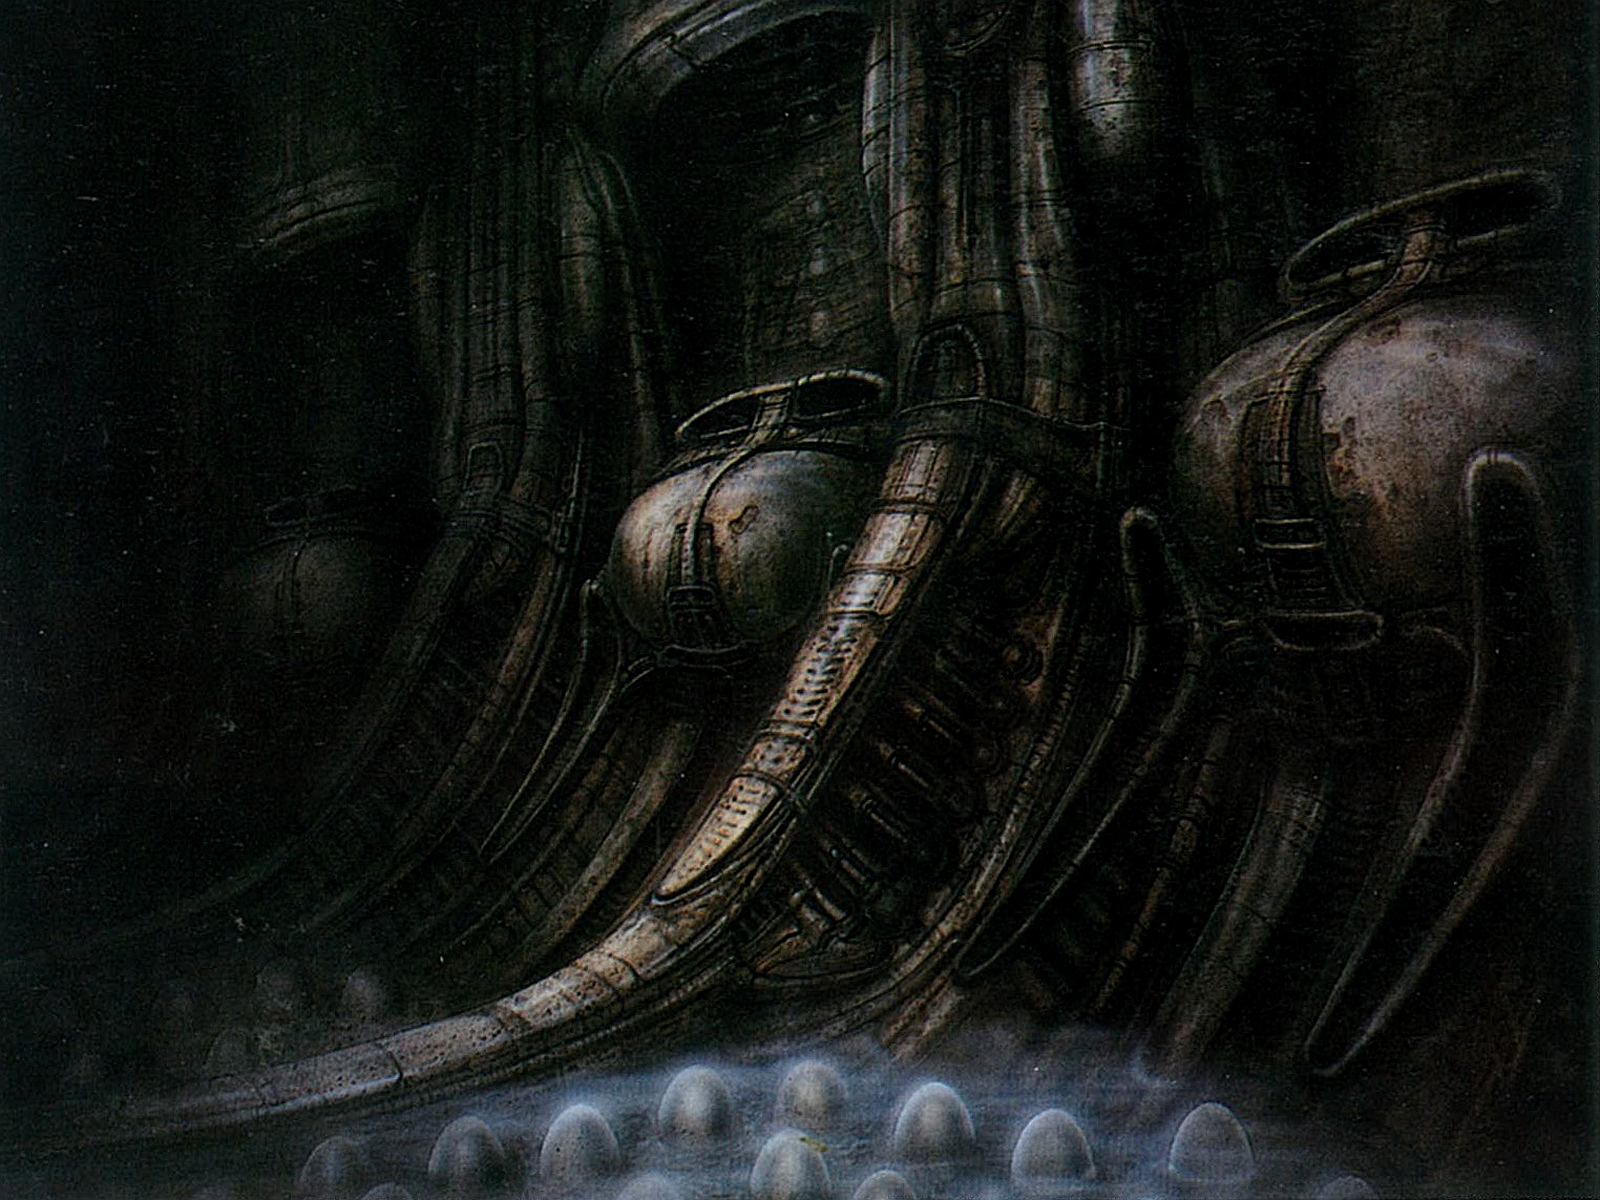 Alien Concept Art Computer Wallpapers, Desktop Backgrounds | 1600x1200 ... H.r. Giger Wallpaper